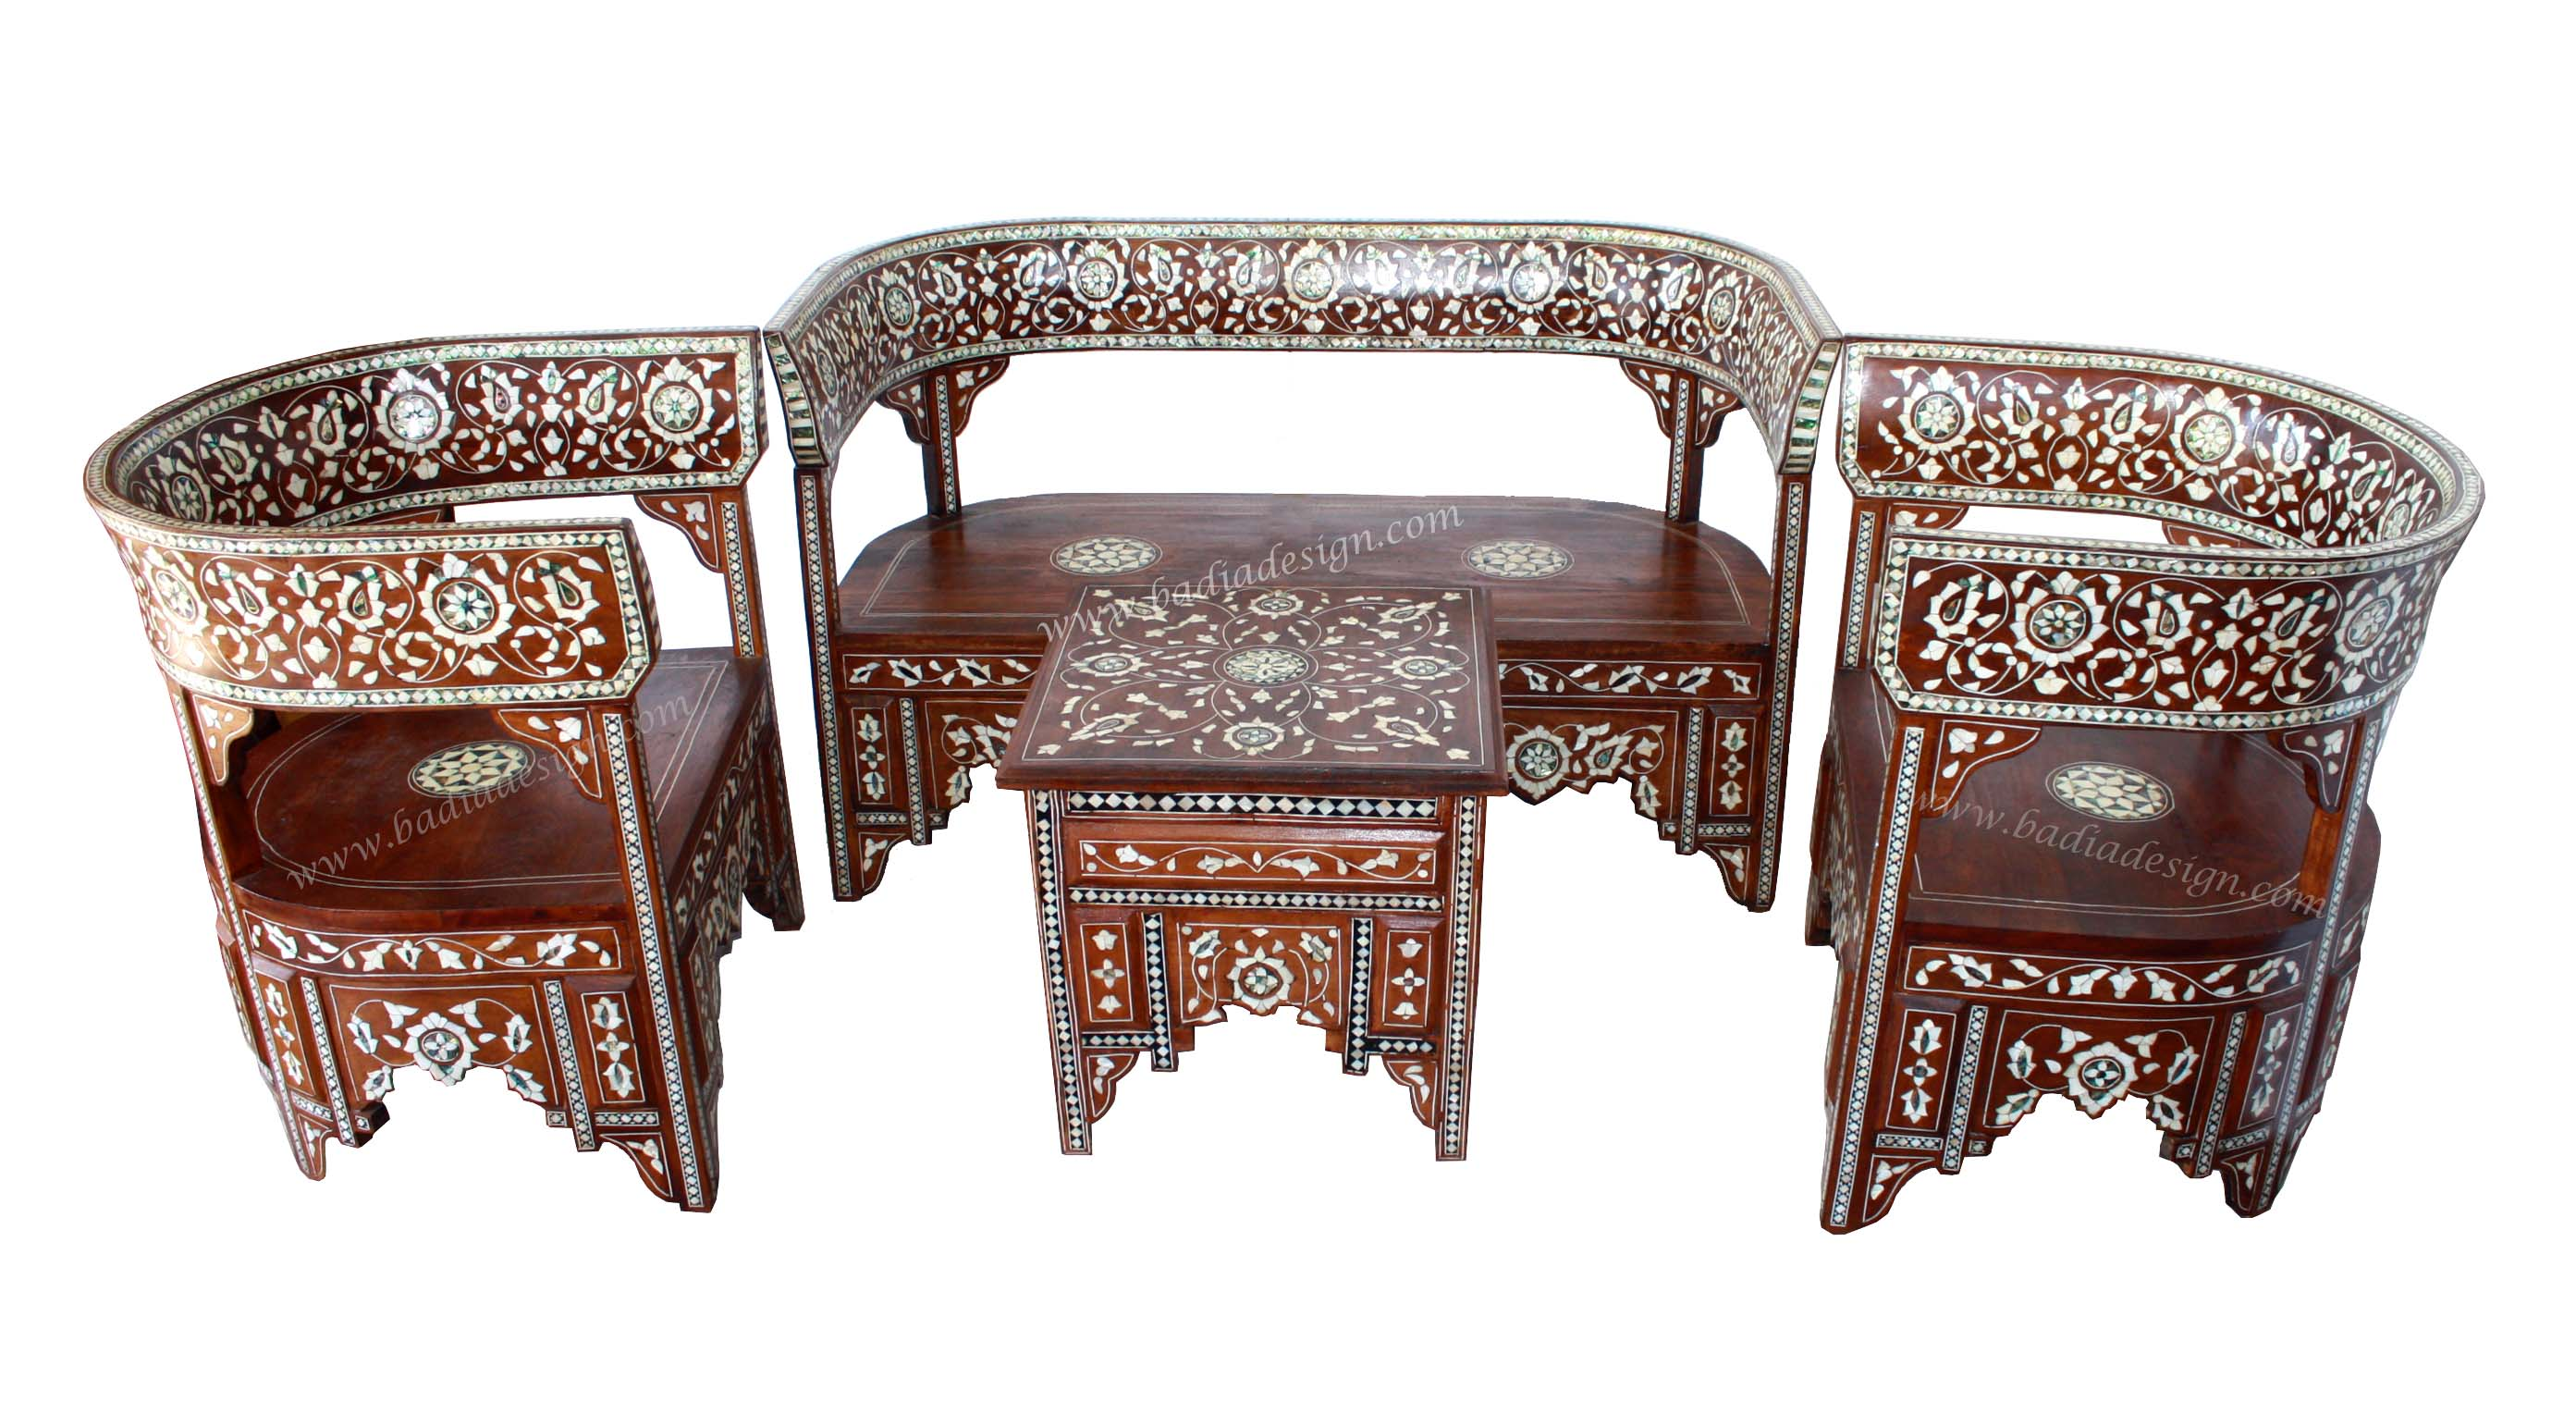 Moroccan Mother Of Pearl Living Room Set, Moroccan Mother Of Pearl Bench,  Mother Of